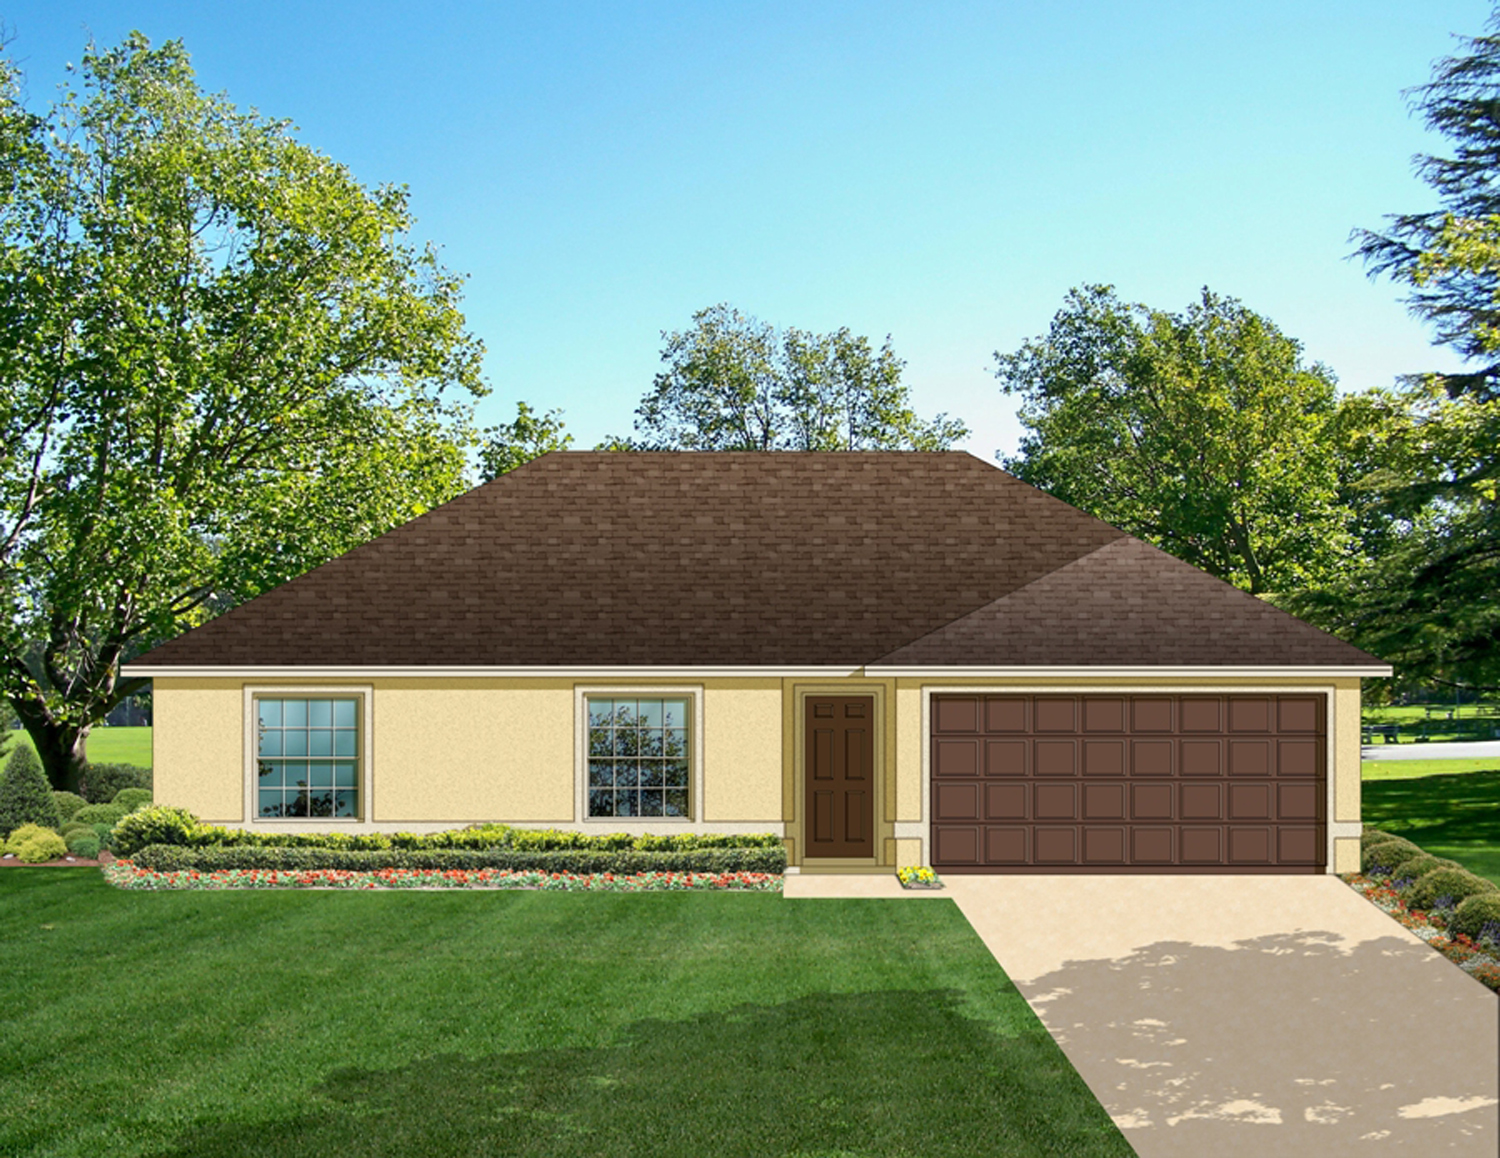 Economical 3 bed ranch home plan 82021ka 1st floor for Economical ranch house plans